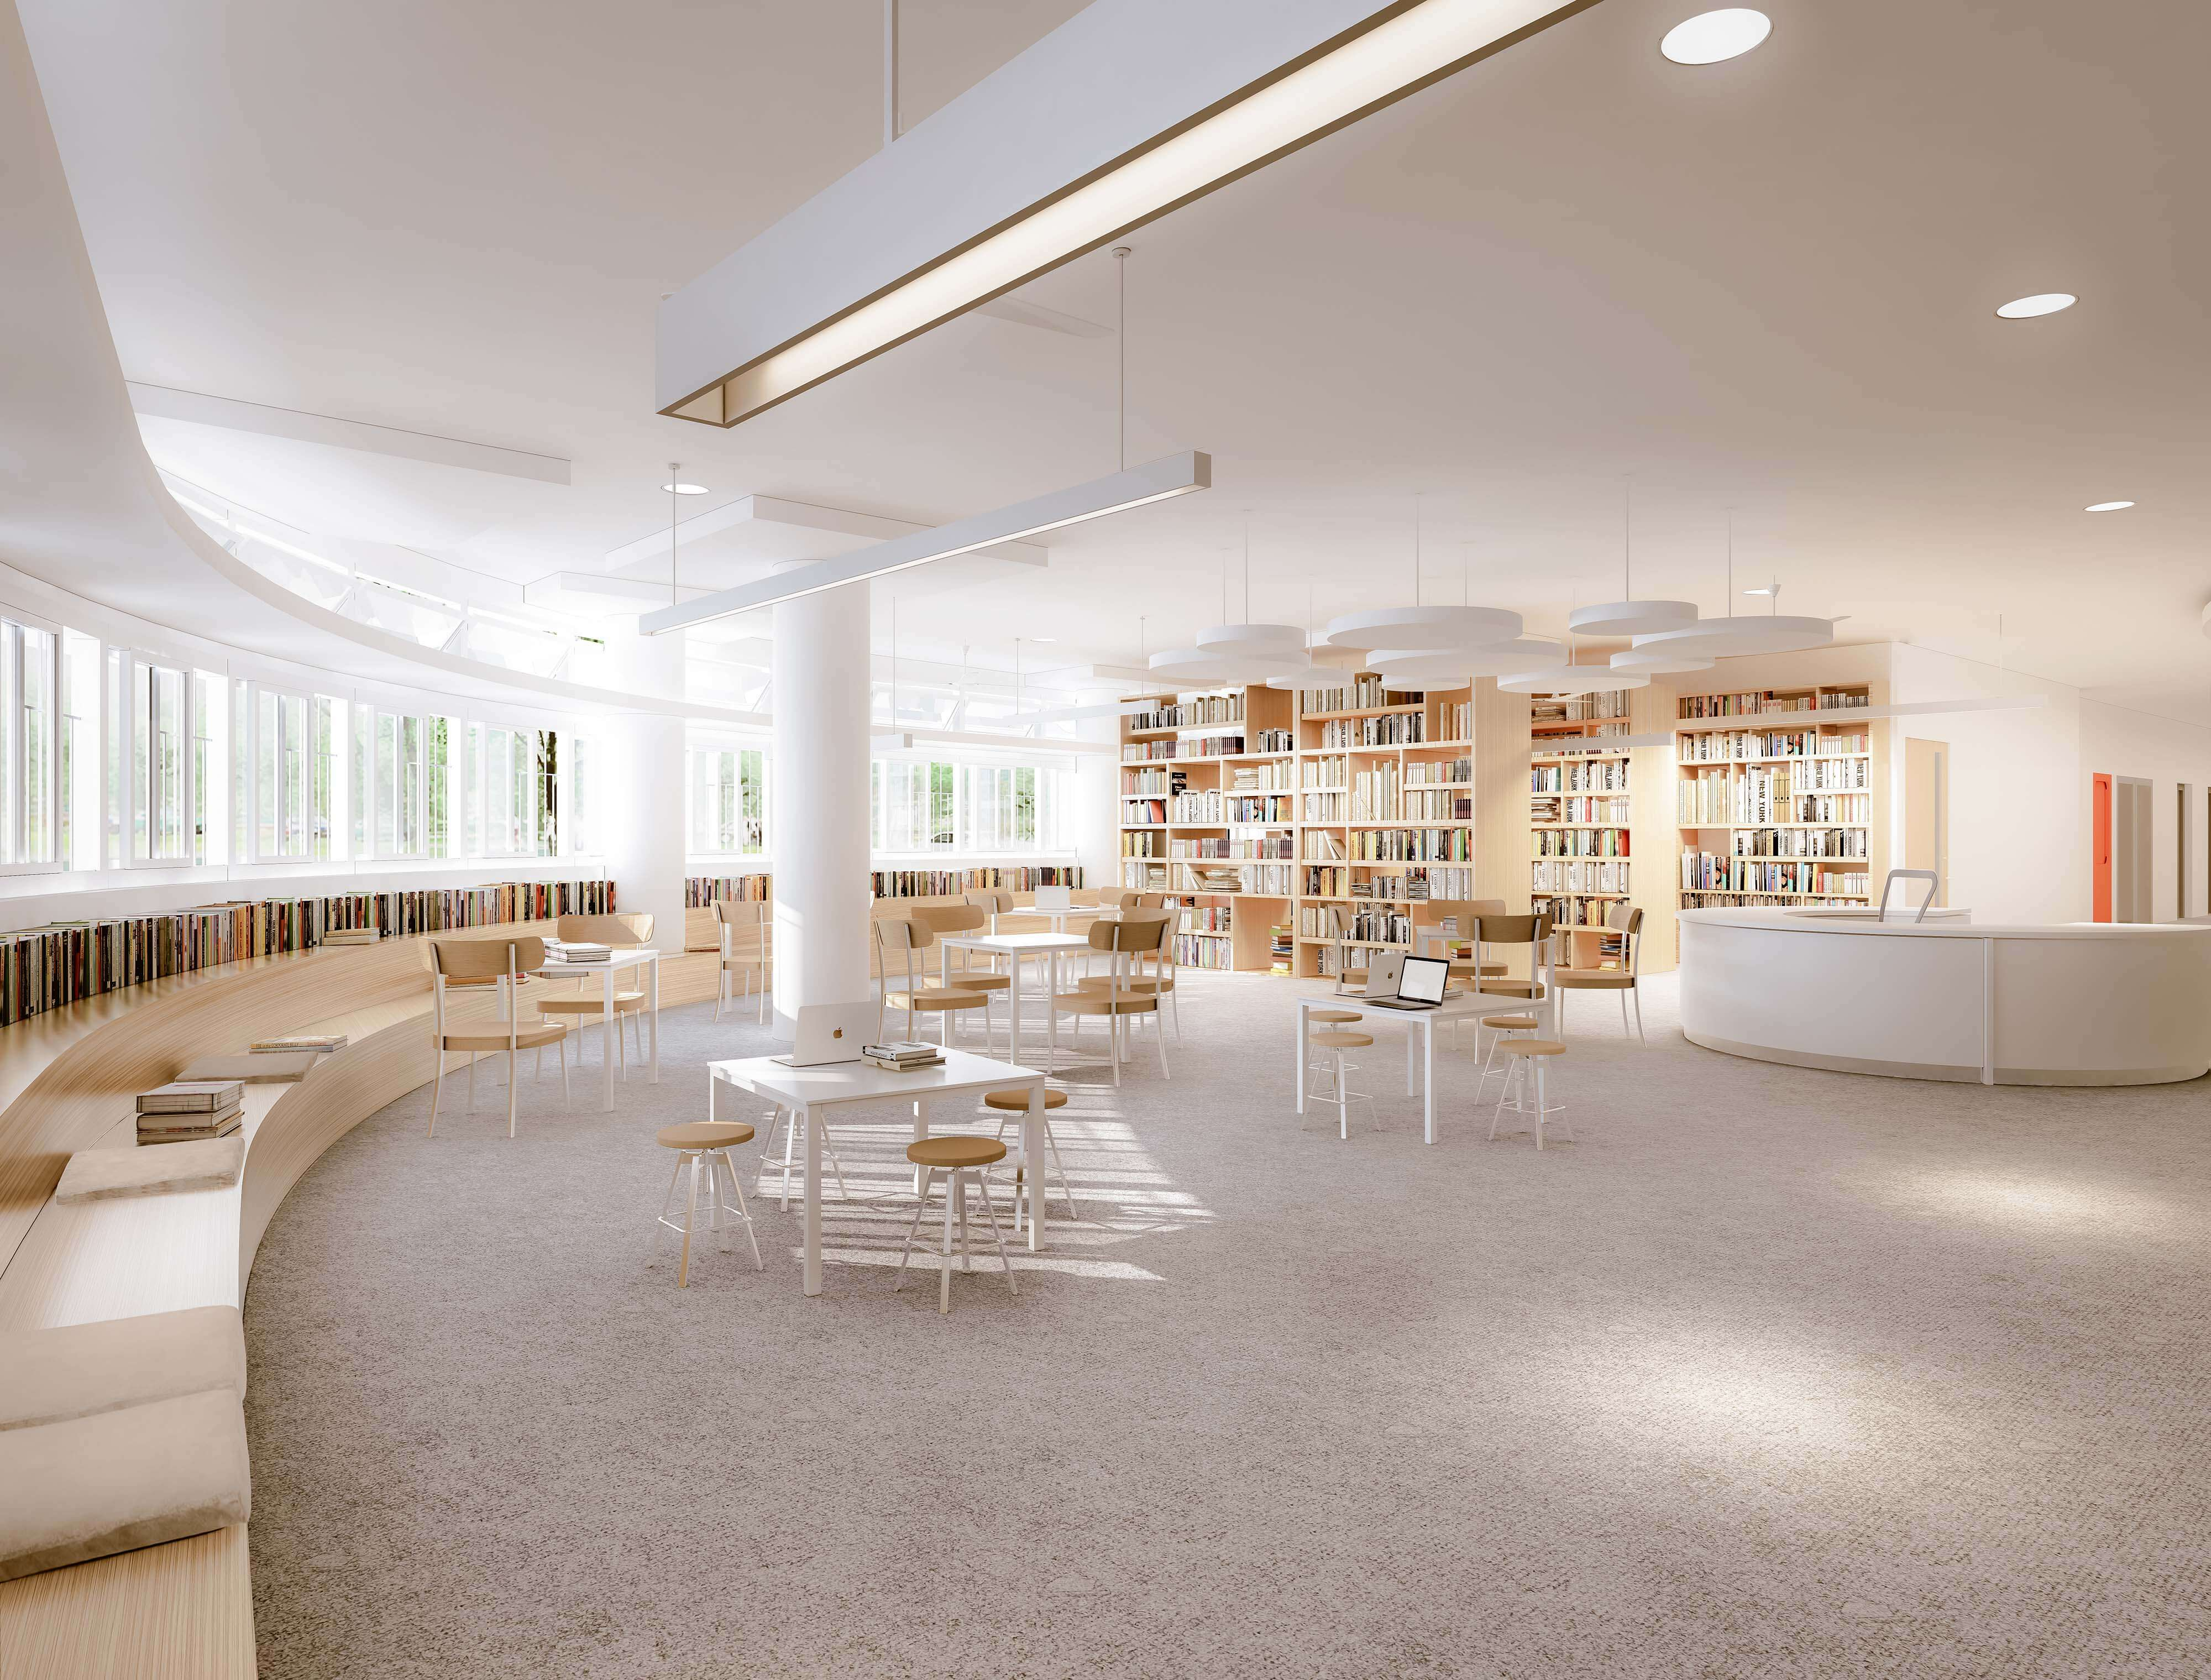 Library_Without Kids_Low